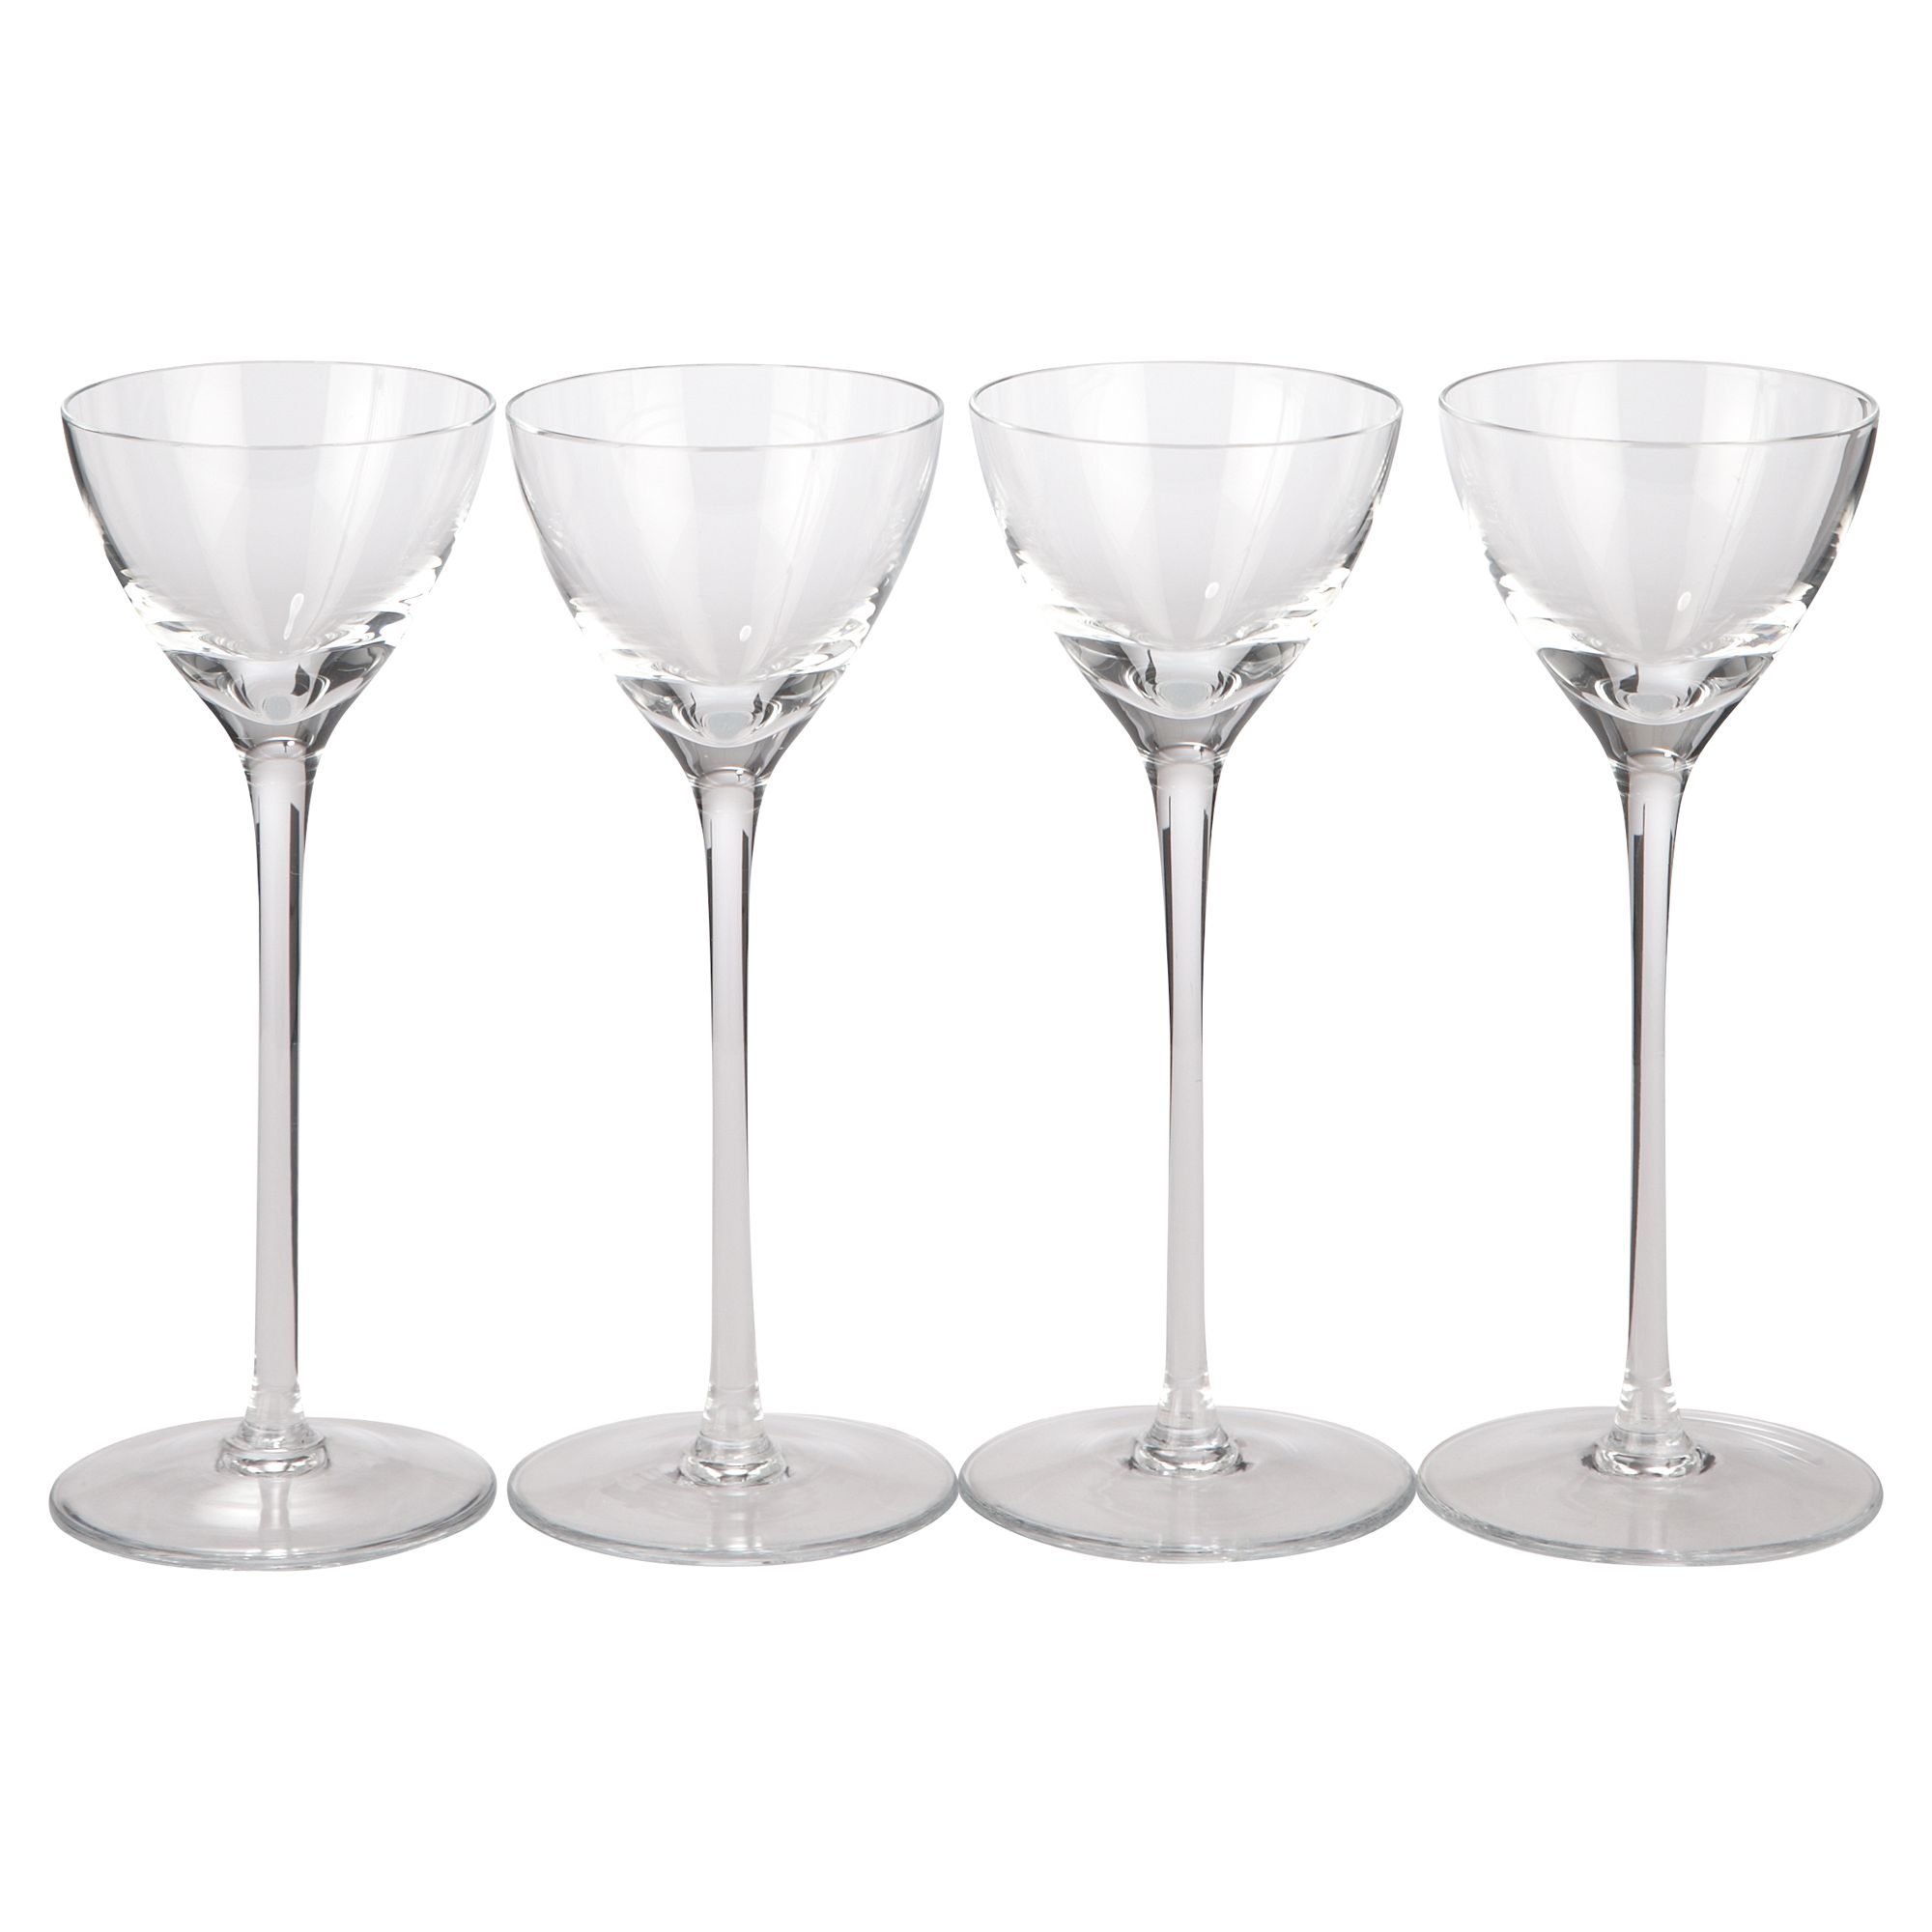 Bar collection liqueur glasses, set of 4